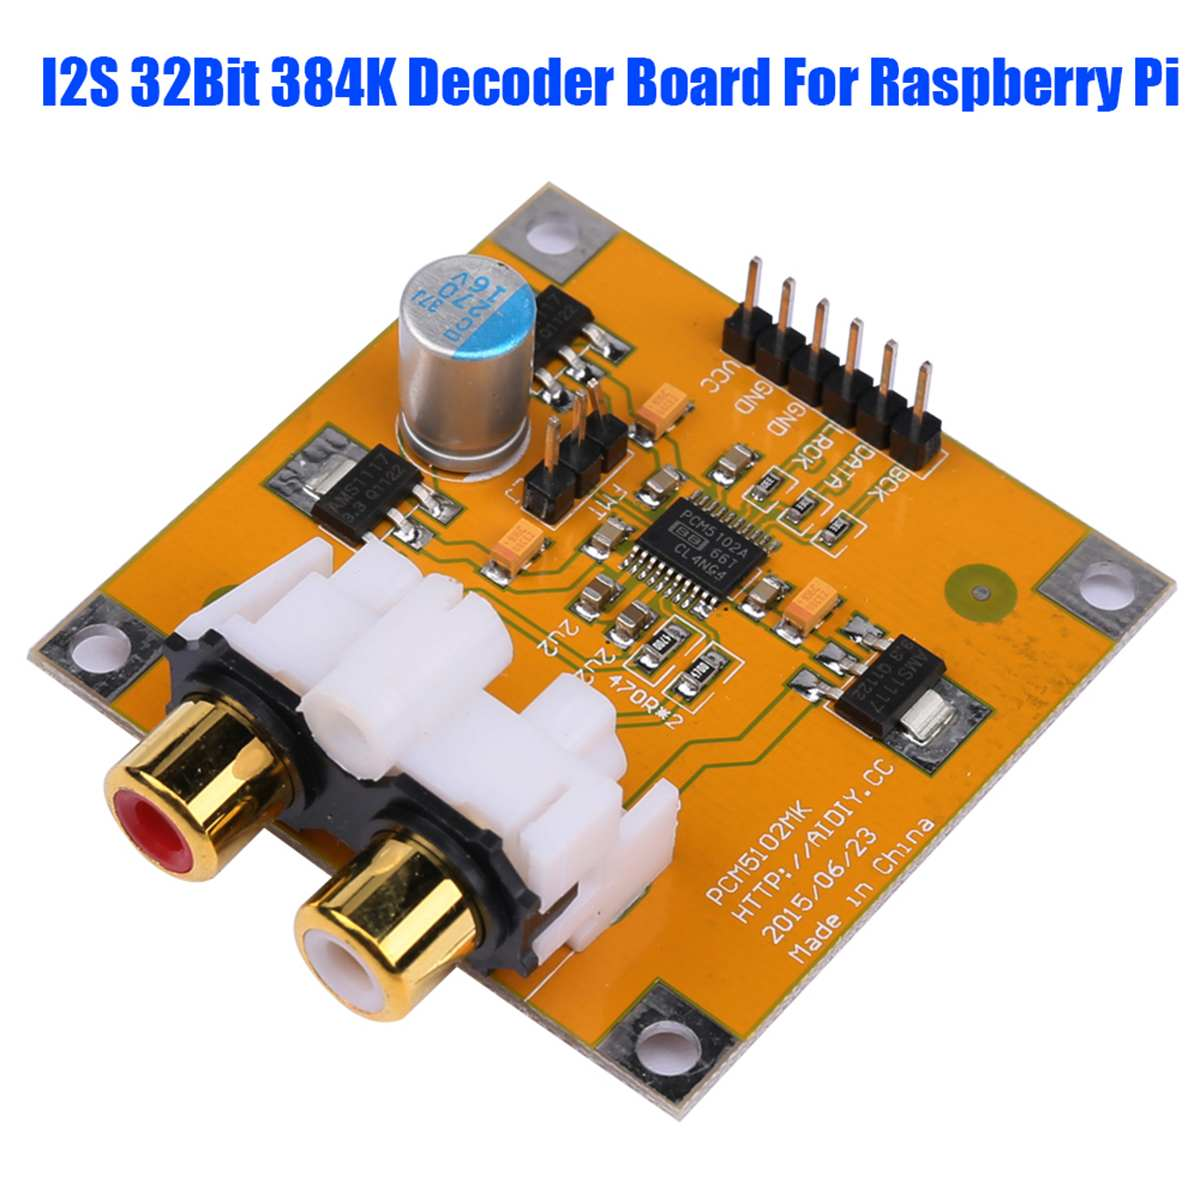 Cliate 1pc Dac Decoder Board M5102/pcm5102a I2s 32bit 384k For Raspberry Pi Red Core Player Audio & Video Replacement Parts